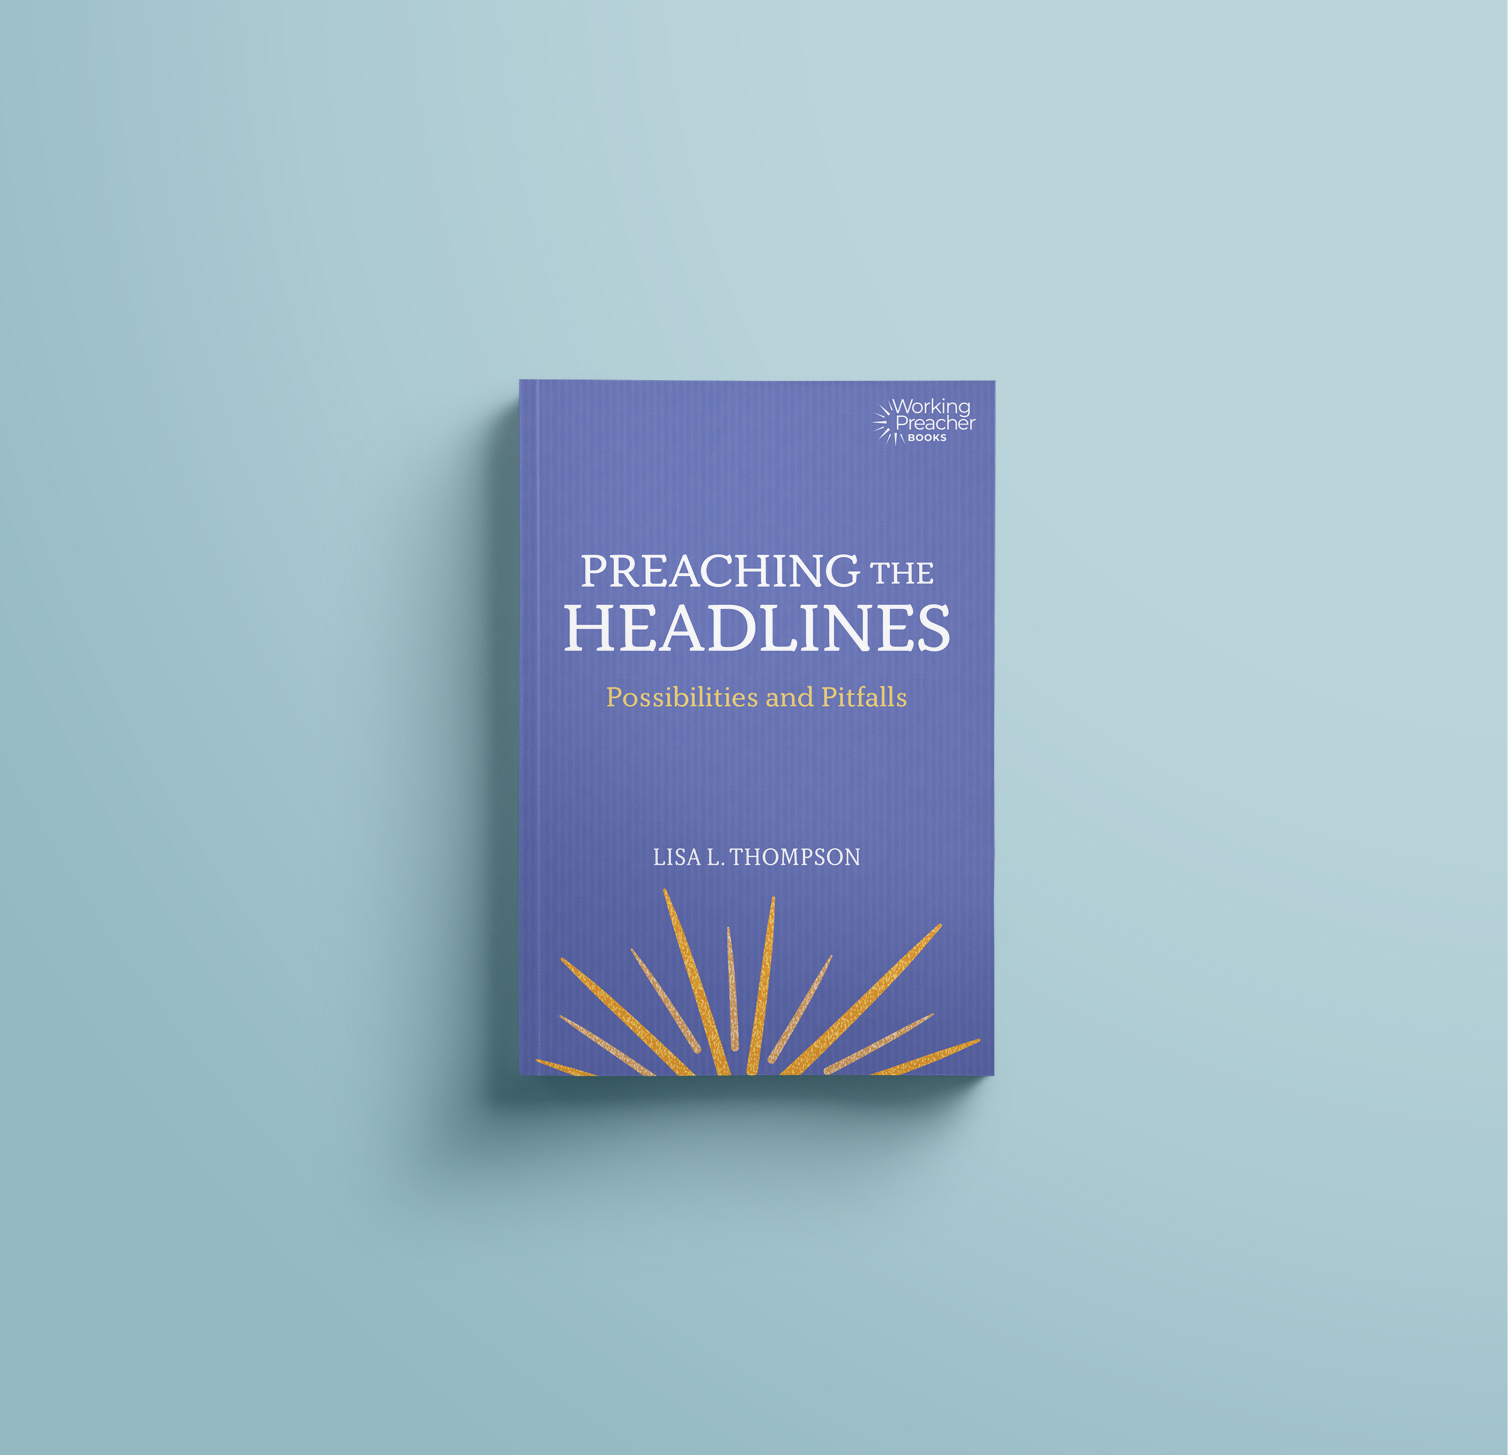 Book cover: Preaching the Headlines by Lisa L. Thompson